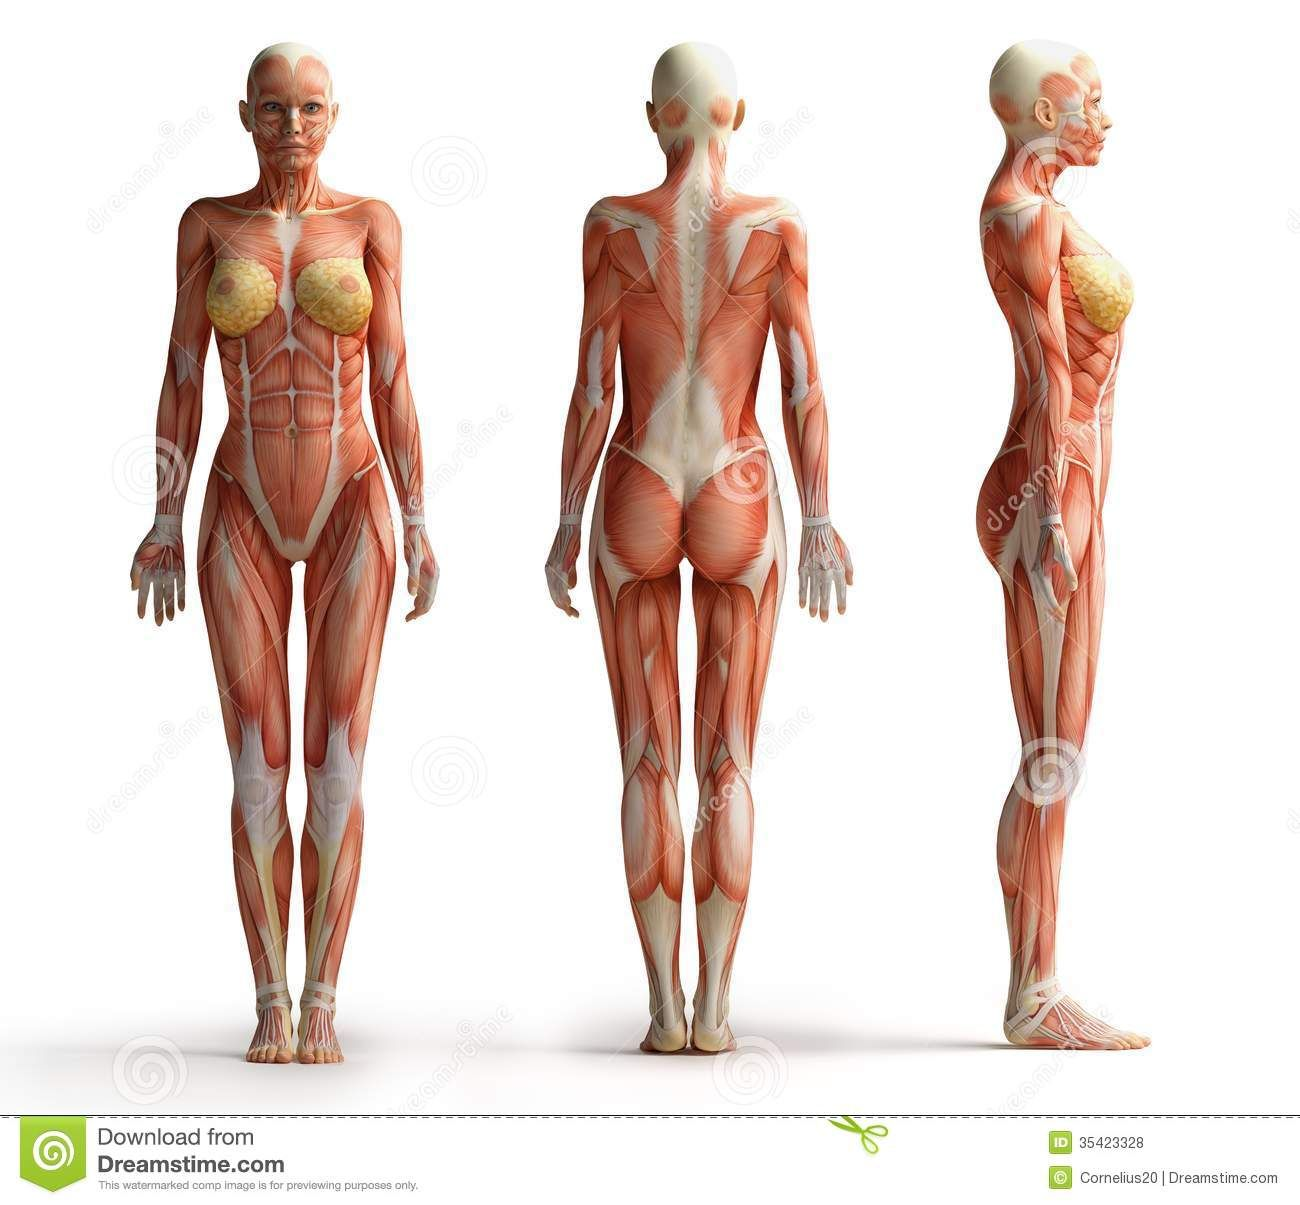 Hey guys I\'m starting an anatomy study of the female body , I would ...